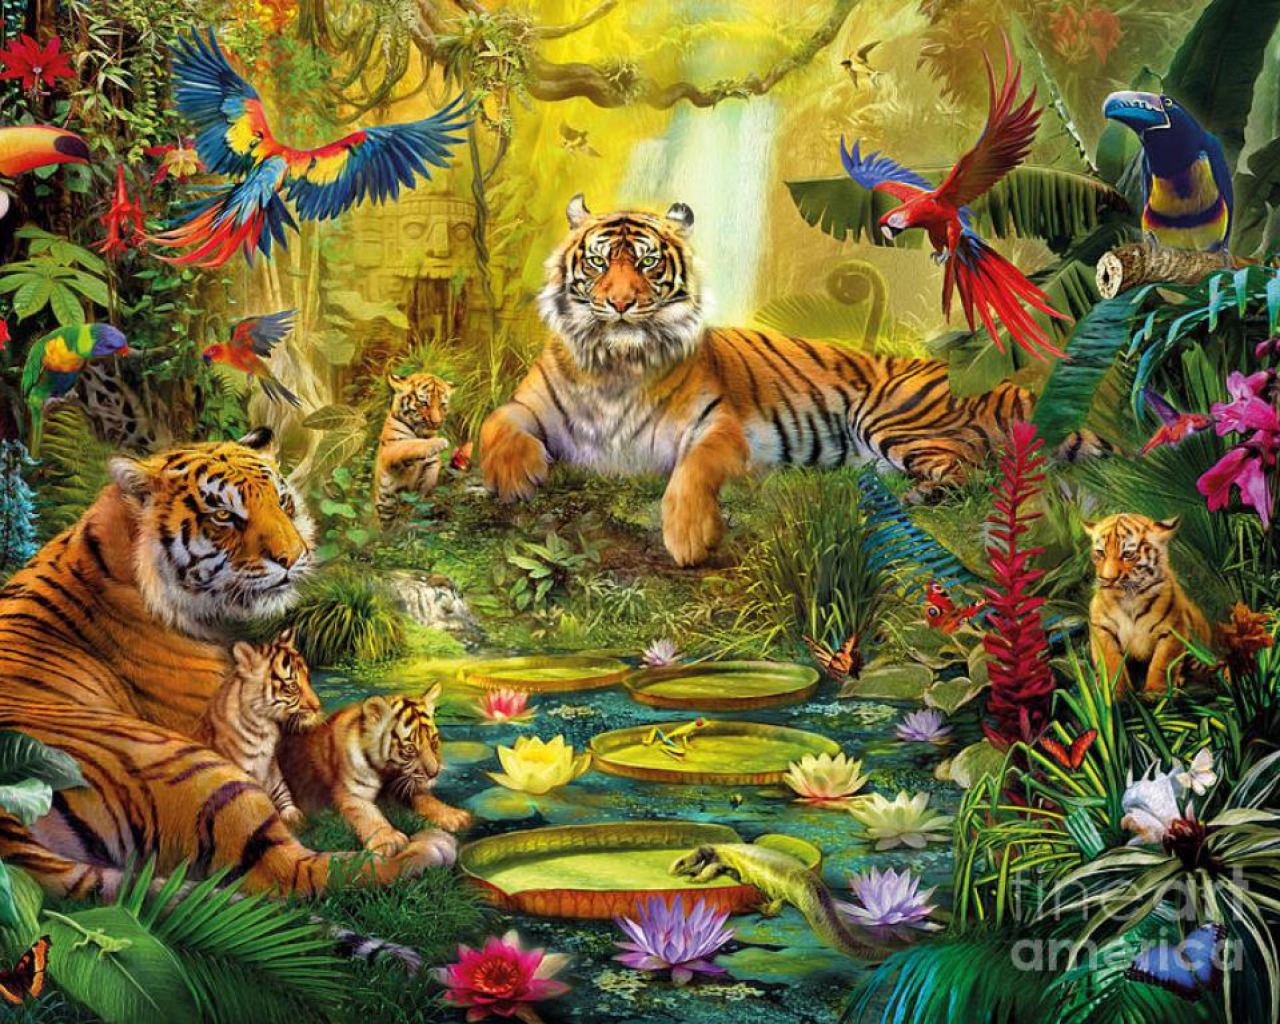 August 7 2015 By Stephen Comments Off on Jungle HD Animal Wallpapers 1280x1024